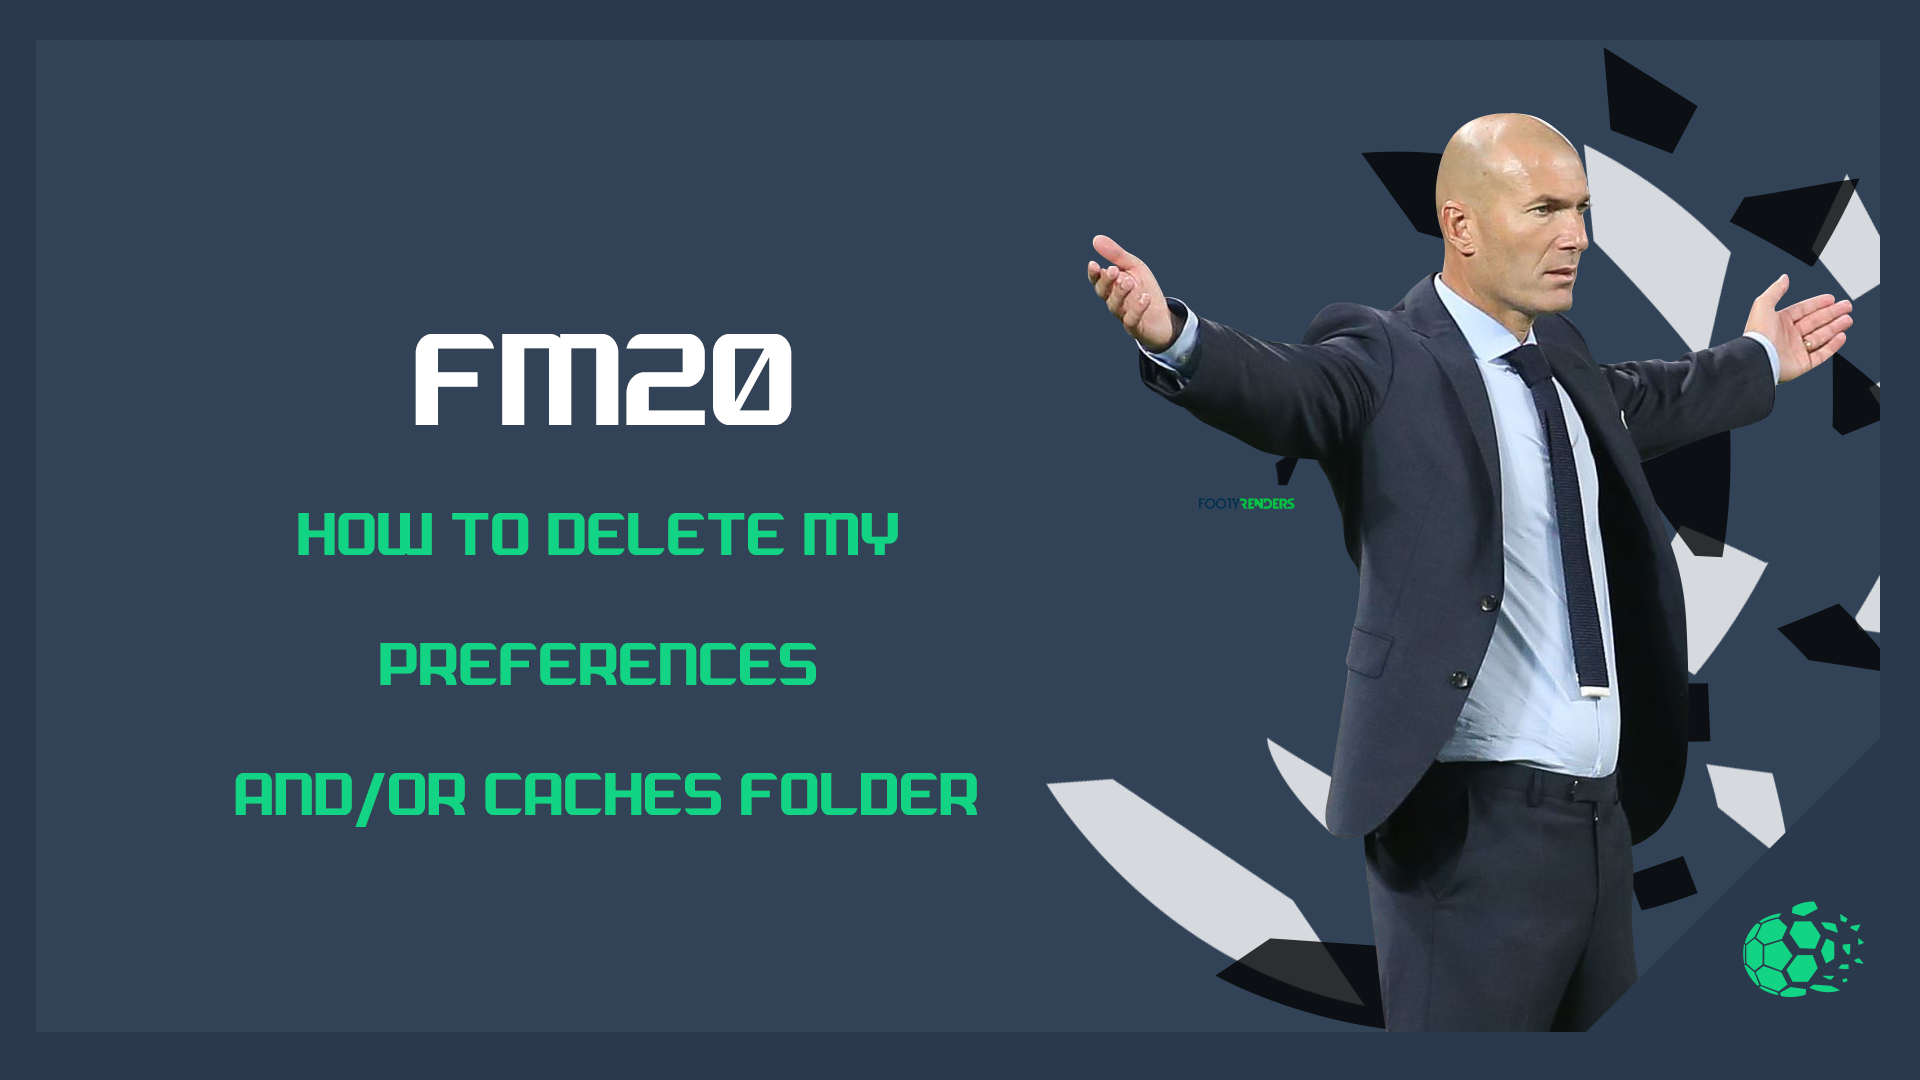 """""""FM20FM20: How to Delete my Preferences and/or Caches Folder"""" feature image"""